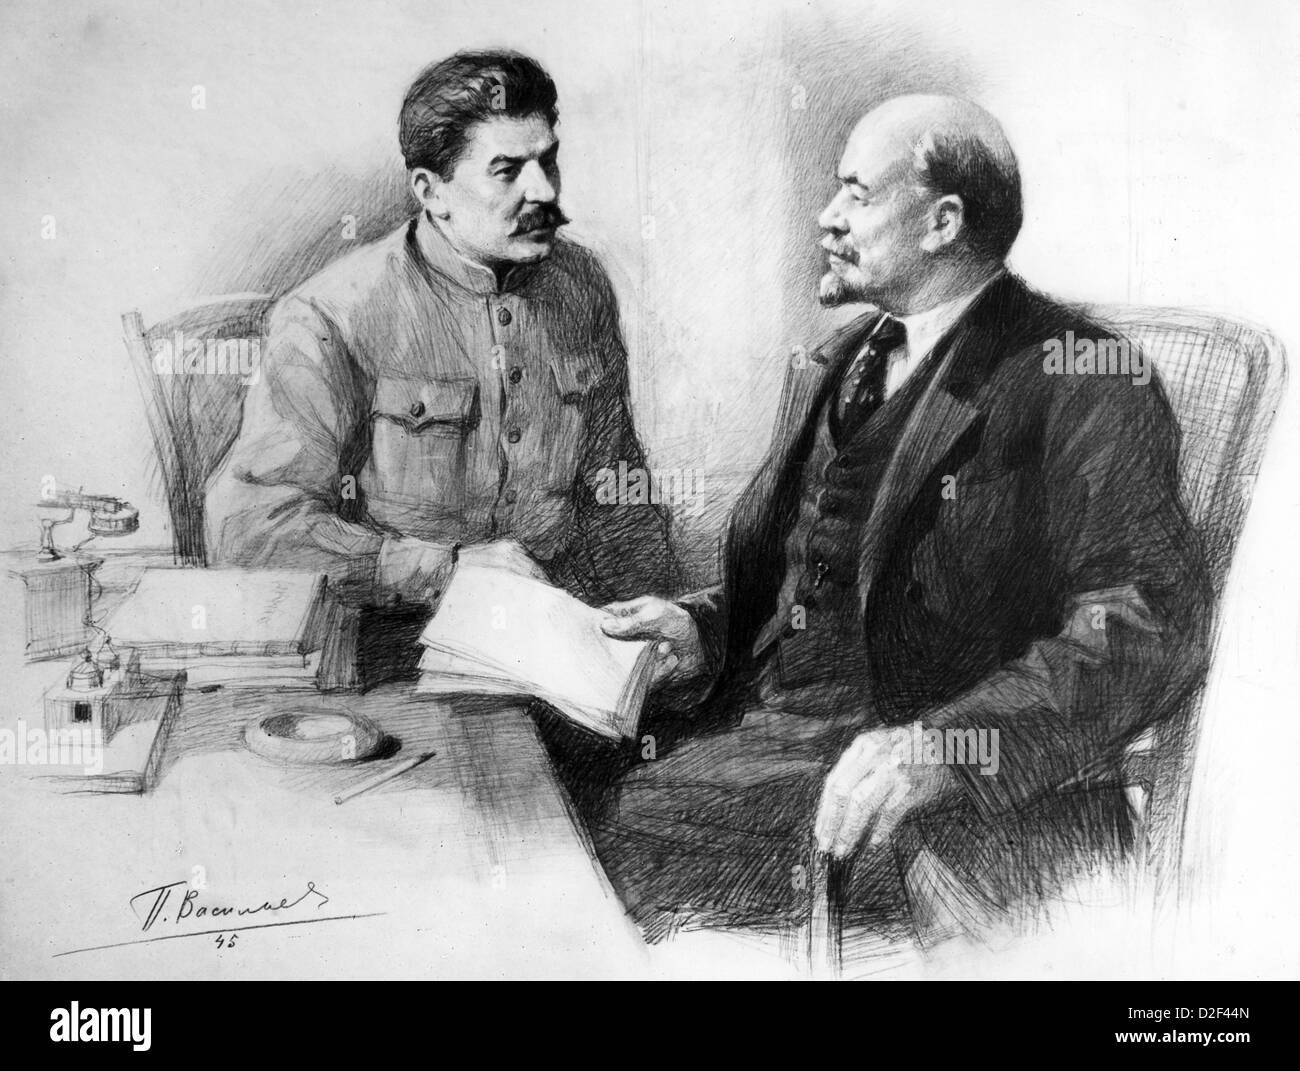 hitler stalin propaganda joseph stalin at right vladimir lenin in a drawing by pietr vassilyev stock alamy